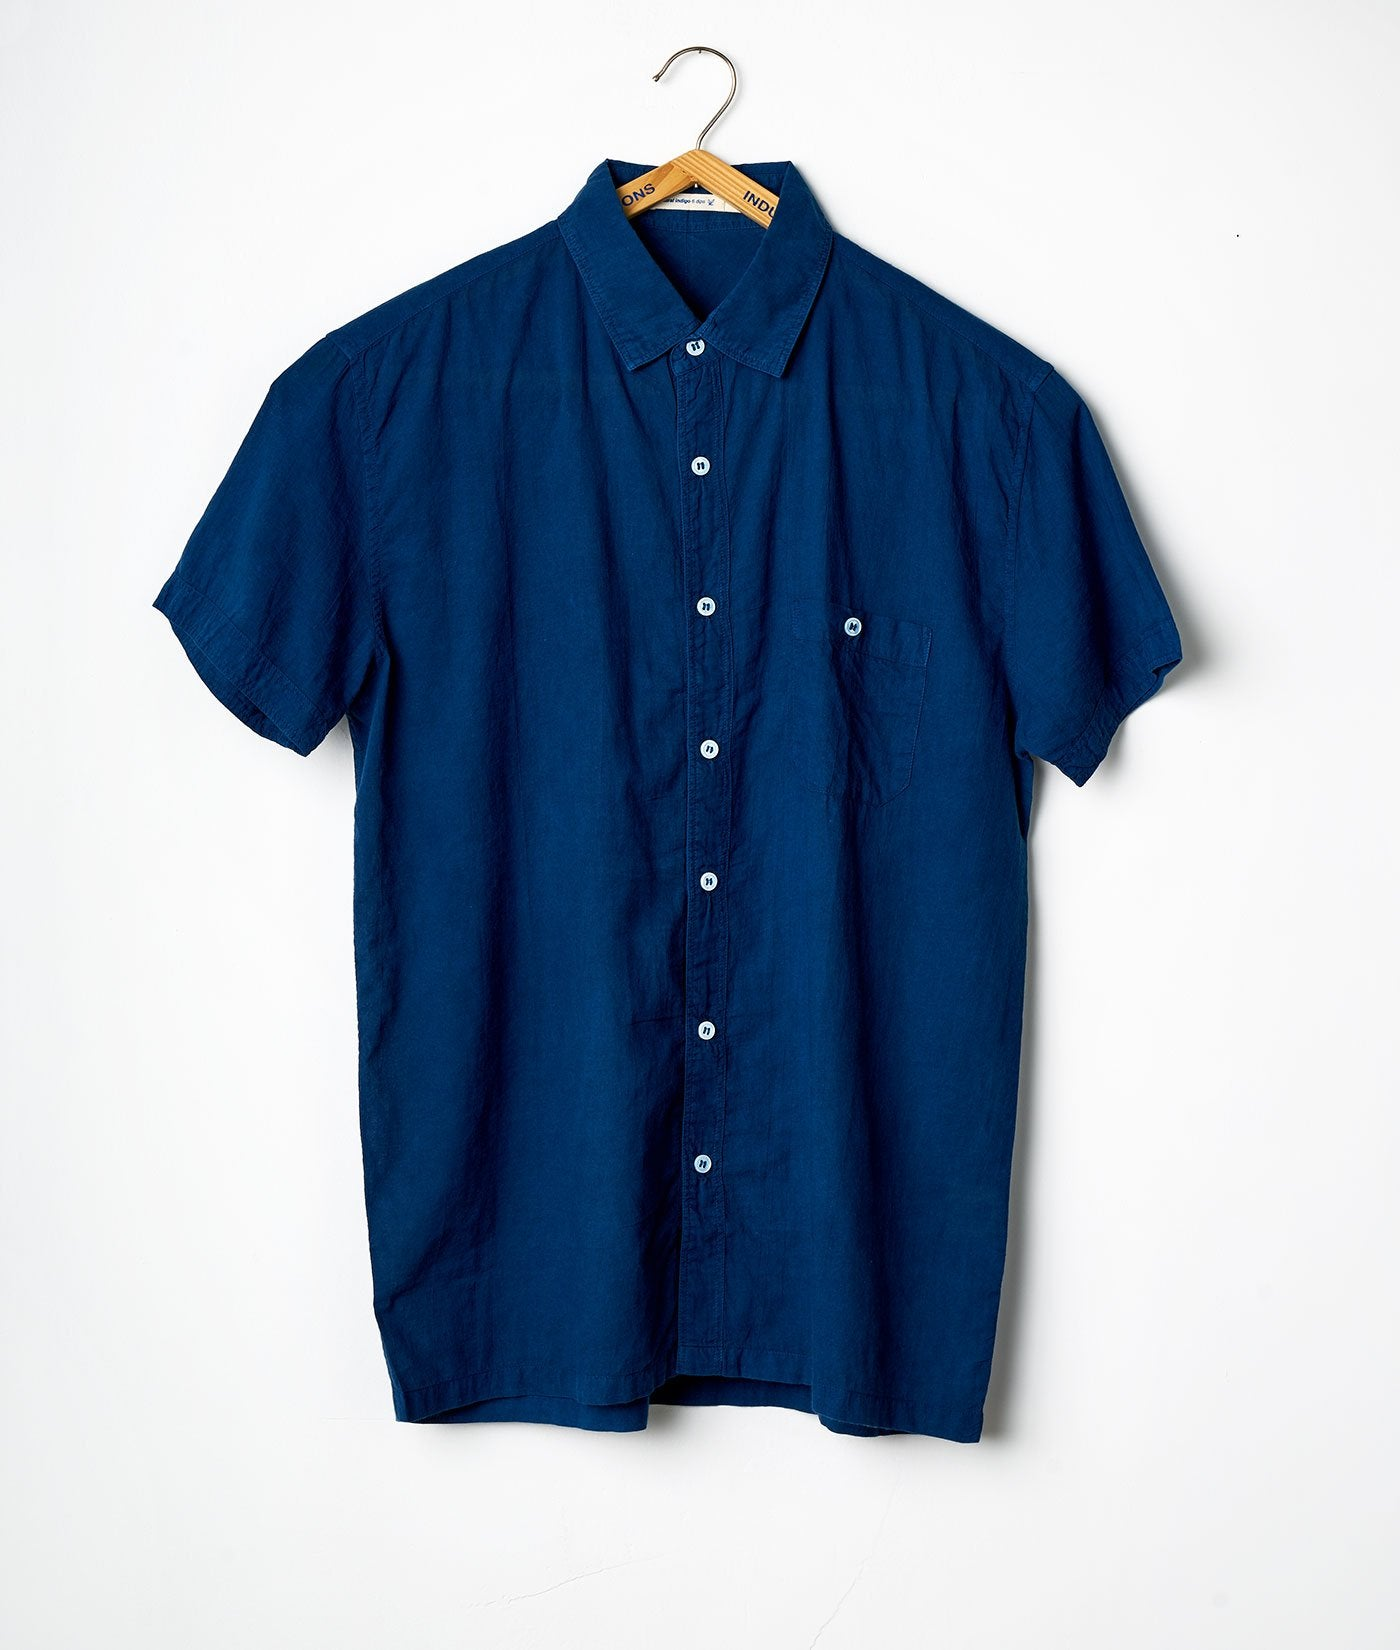 Classic Madras Shirt - Short Sleeve